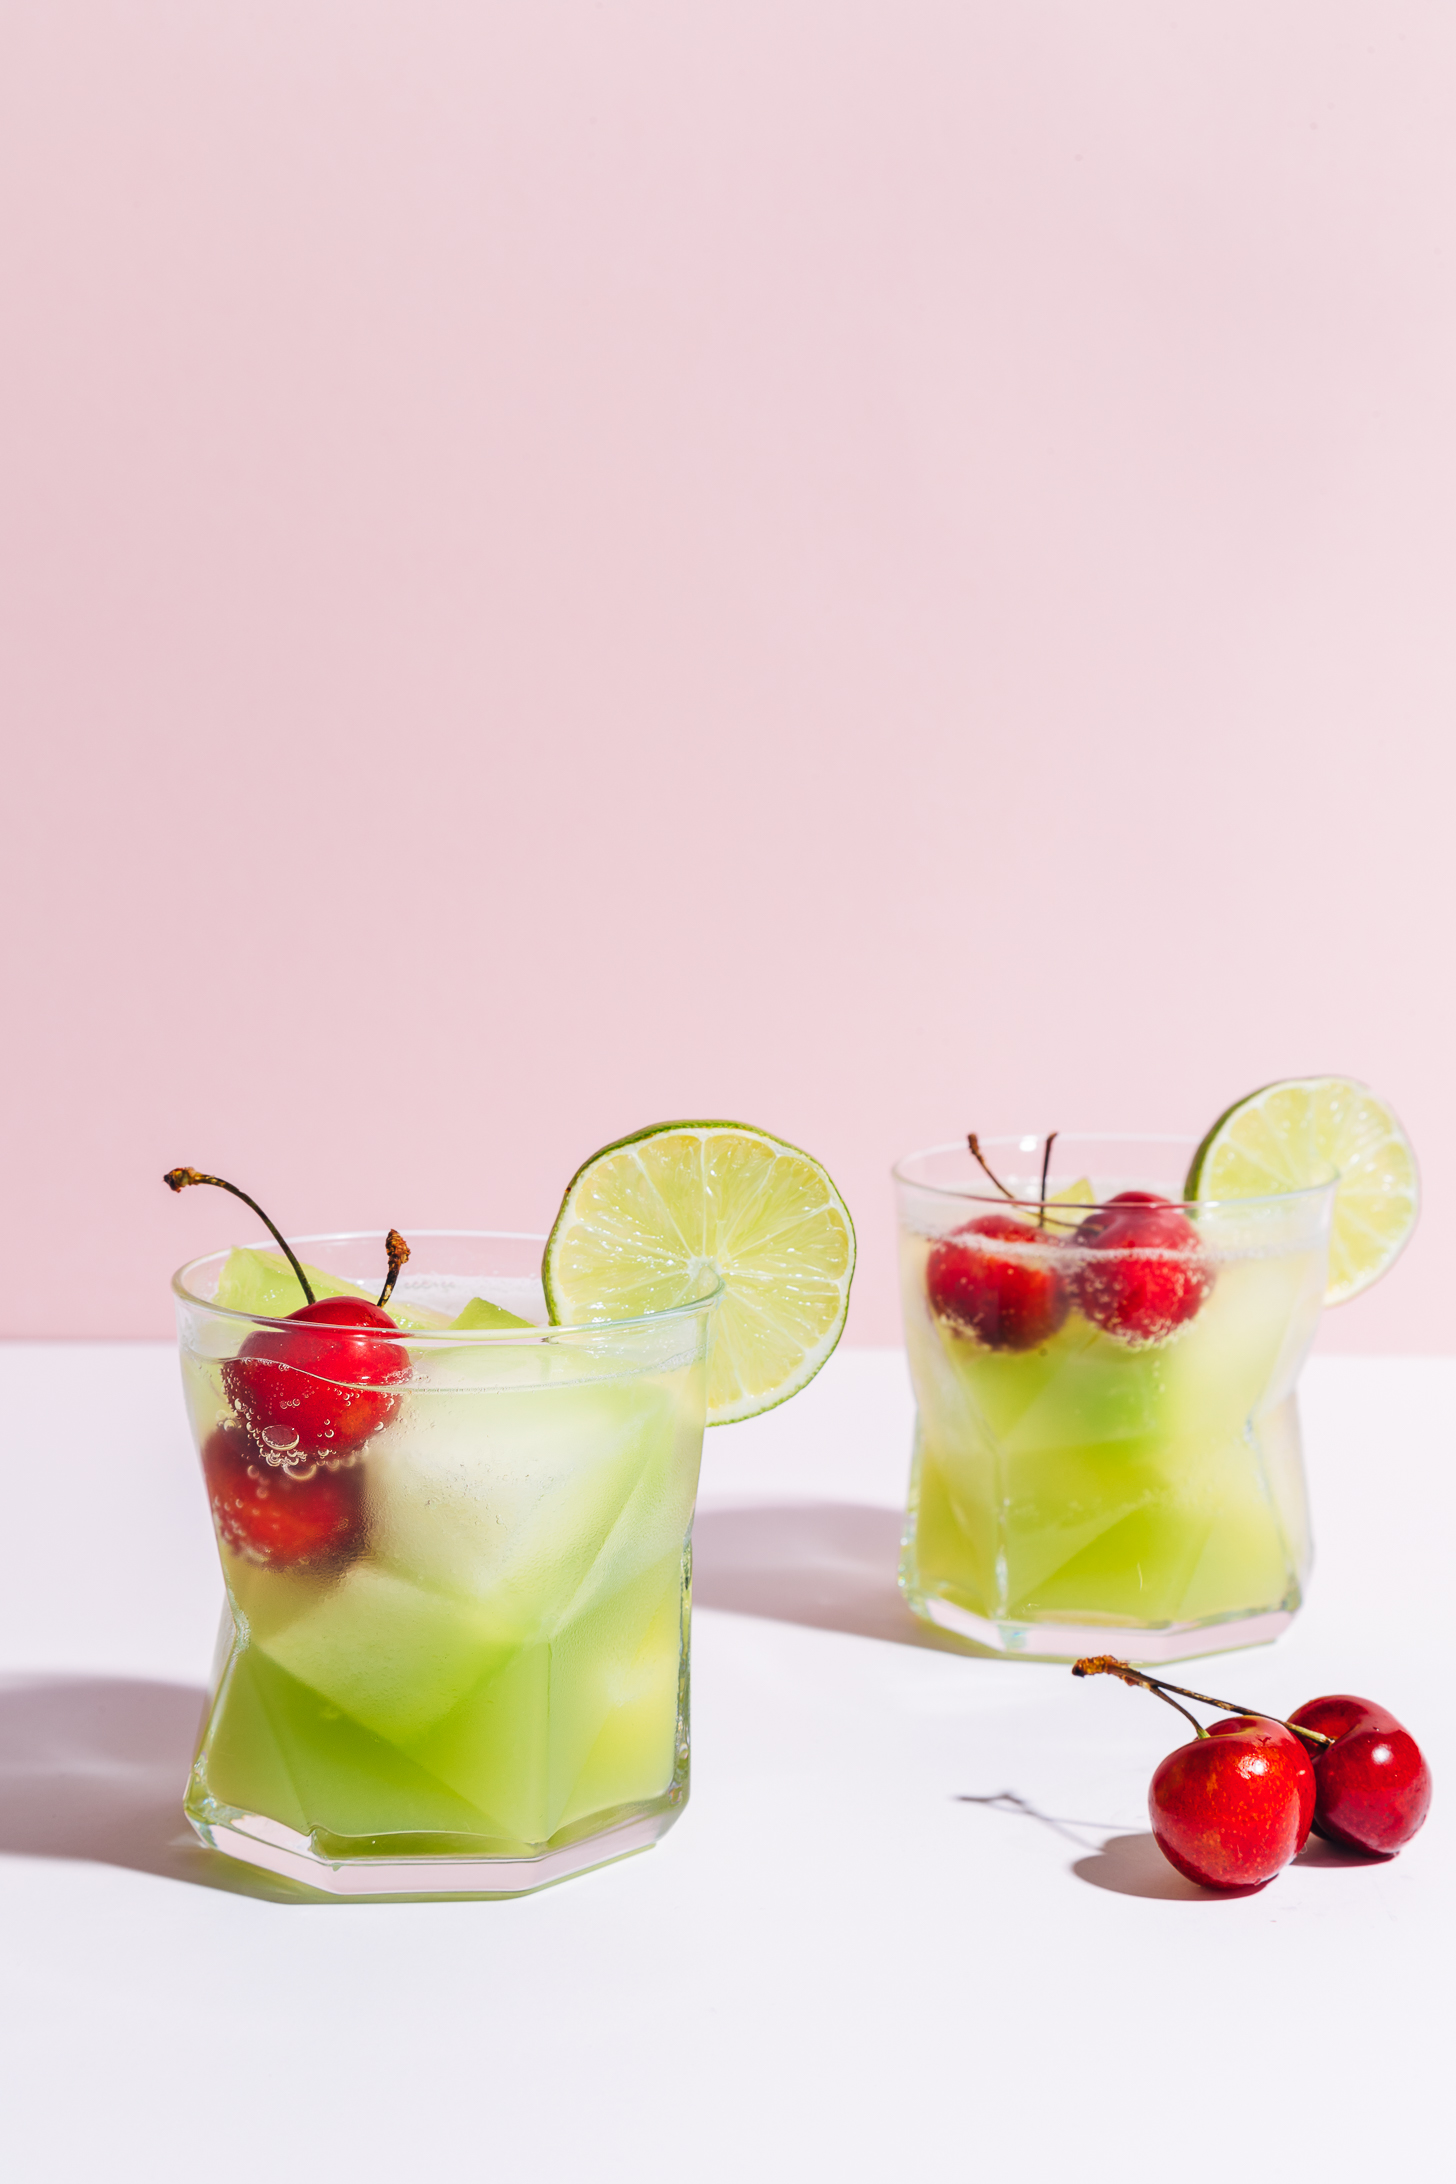 Two glasses of our Citrus & Melon Spritzer with fresh cherries in the glasses